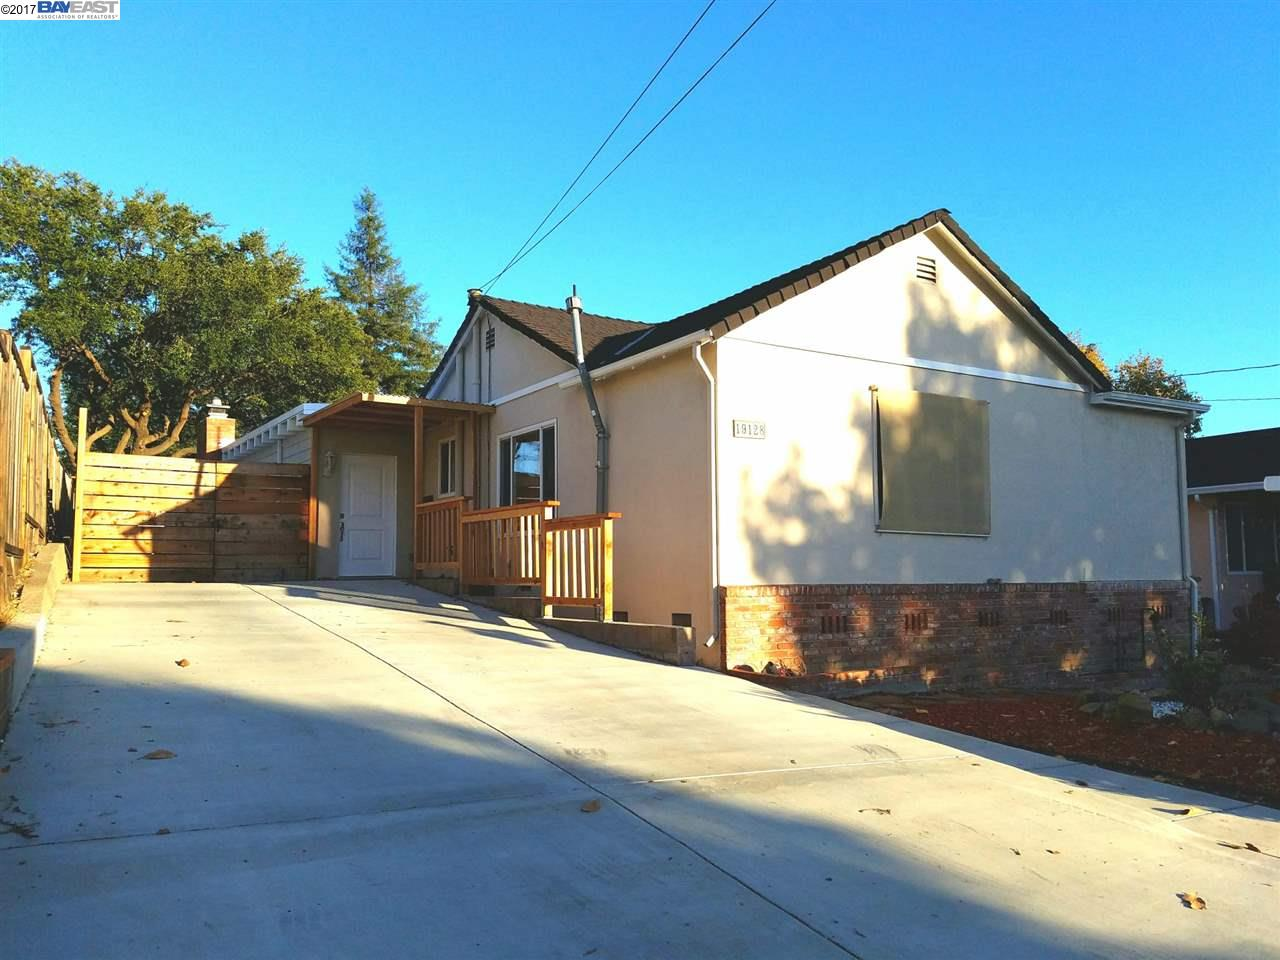 19128 Parsons Ave, Castro Valley, CA, 94546 - SOLD LISTING, MLS ...